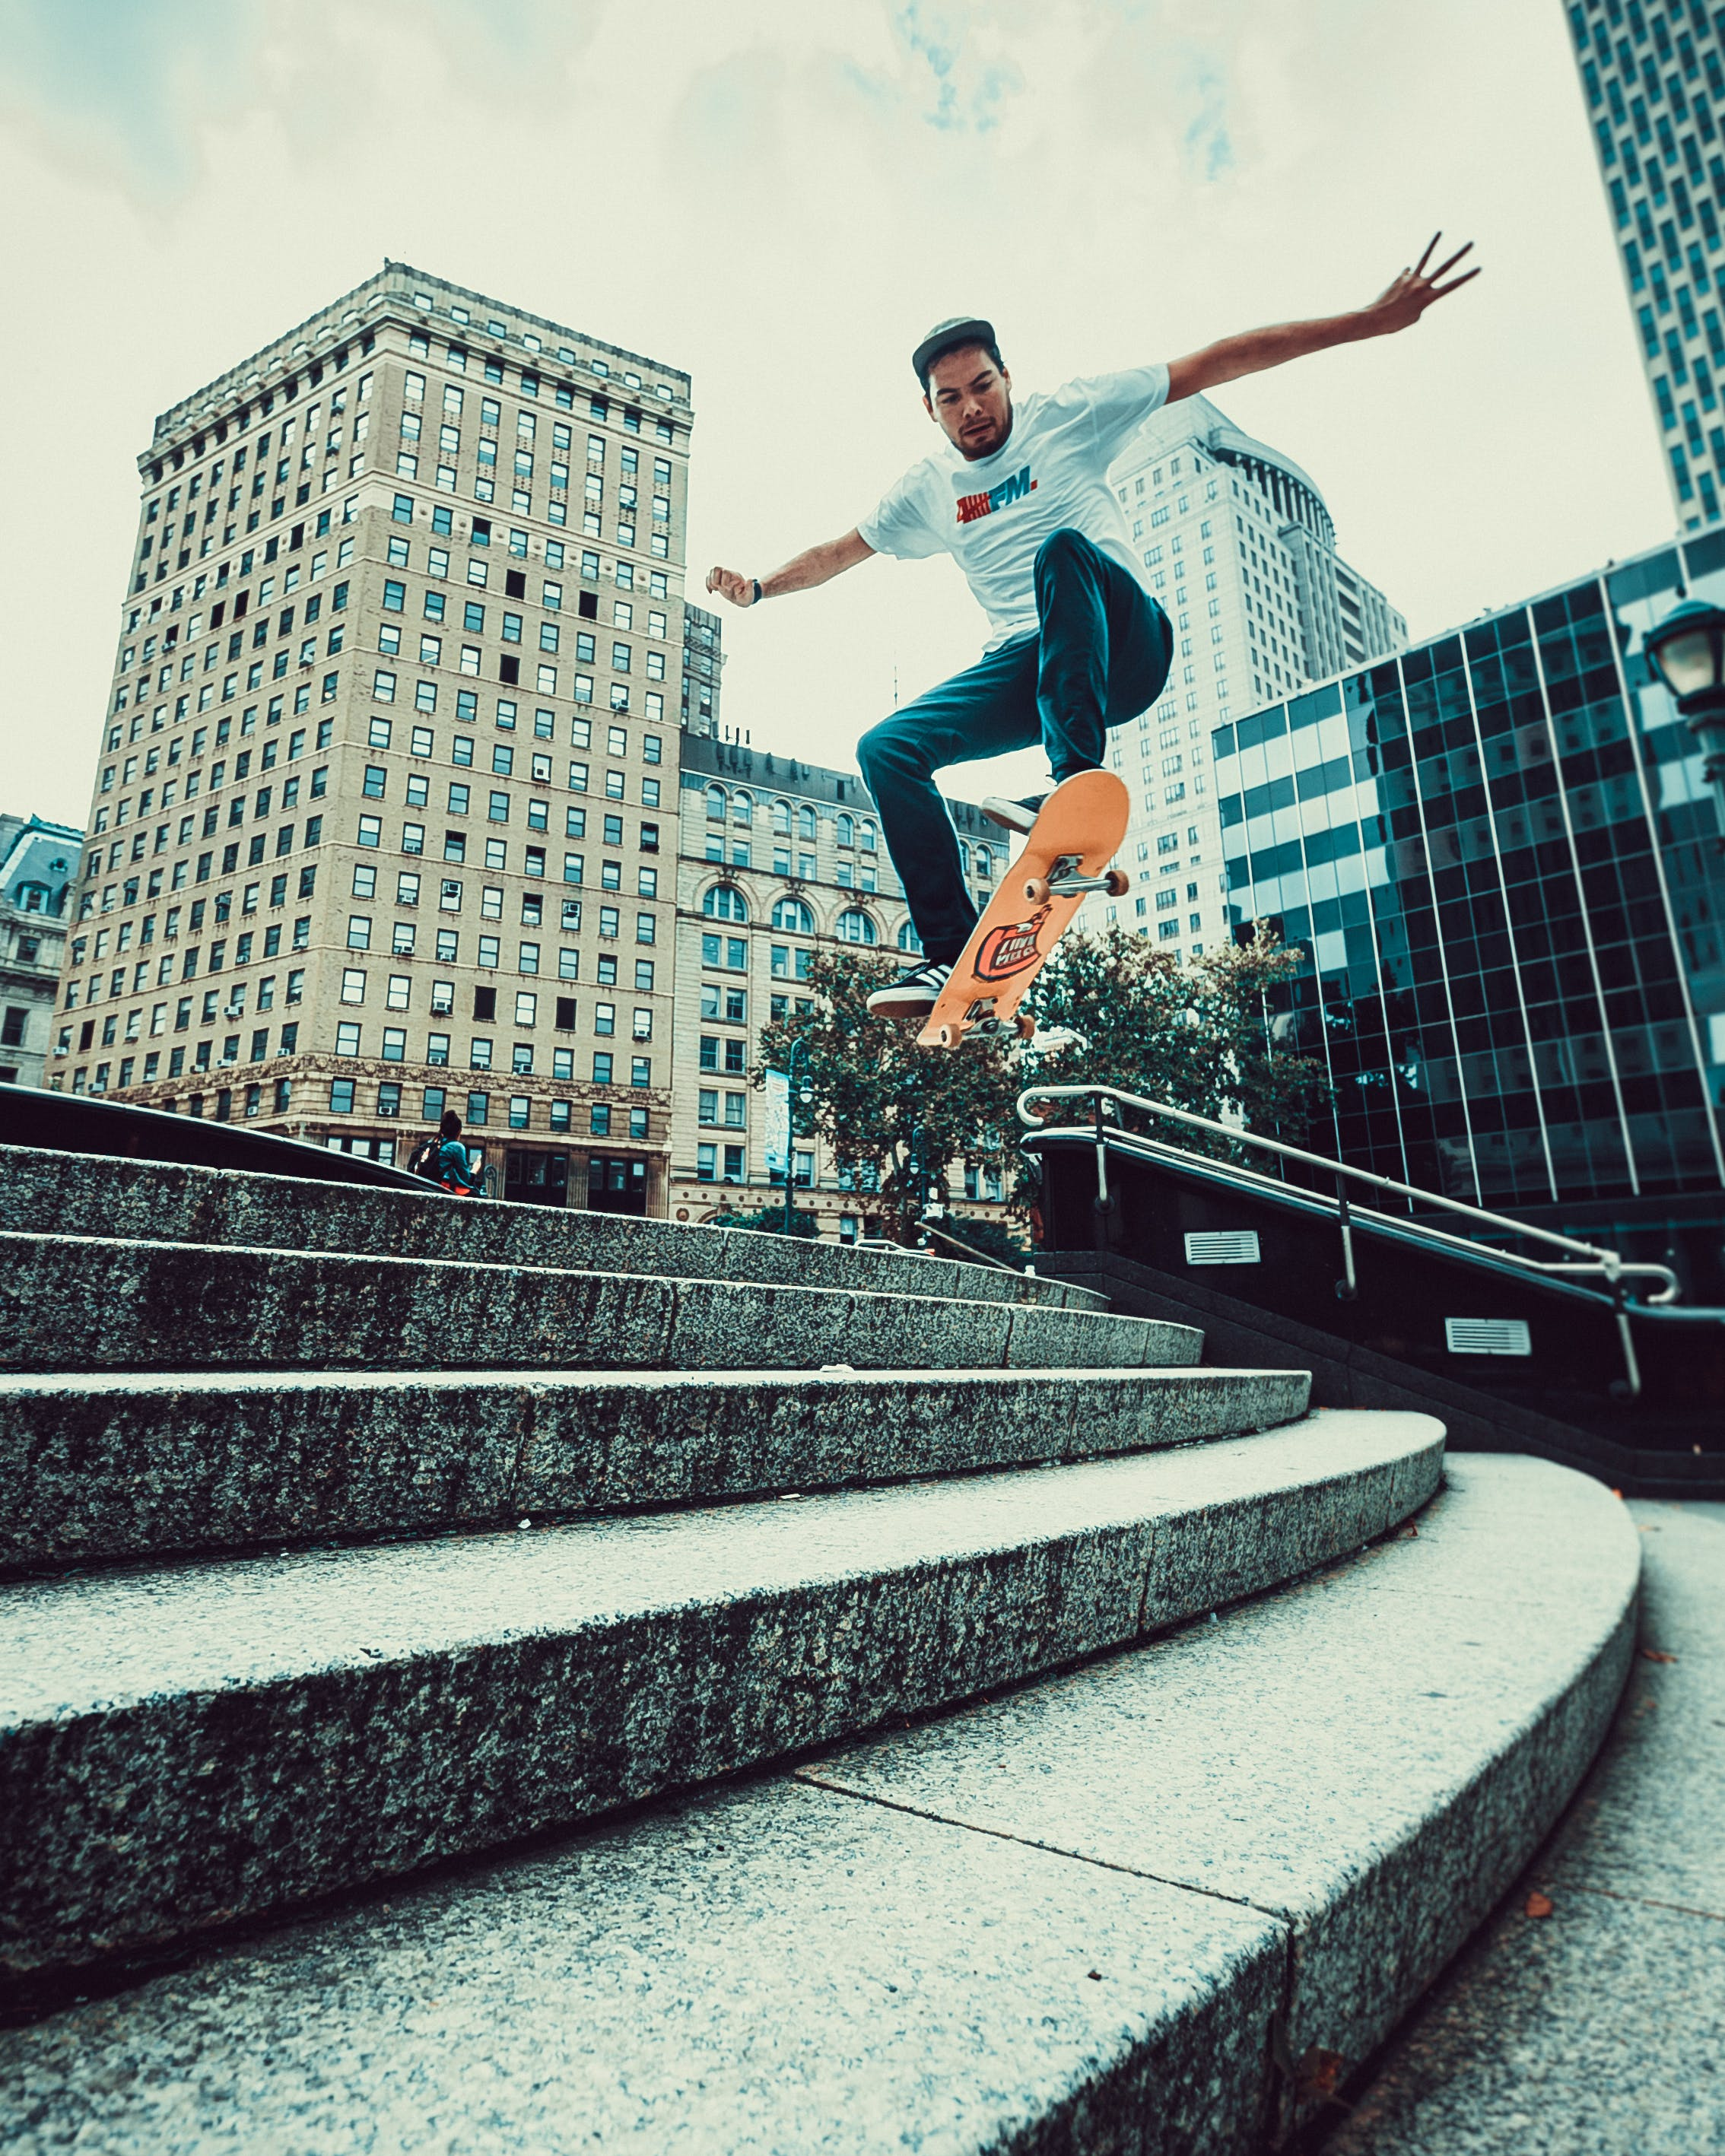 Man Riding Skateboard Doing Tricks On Stairs